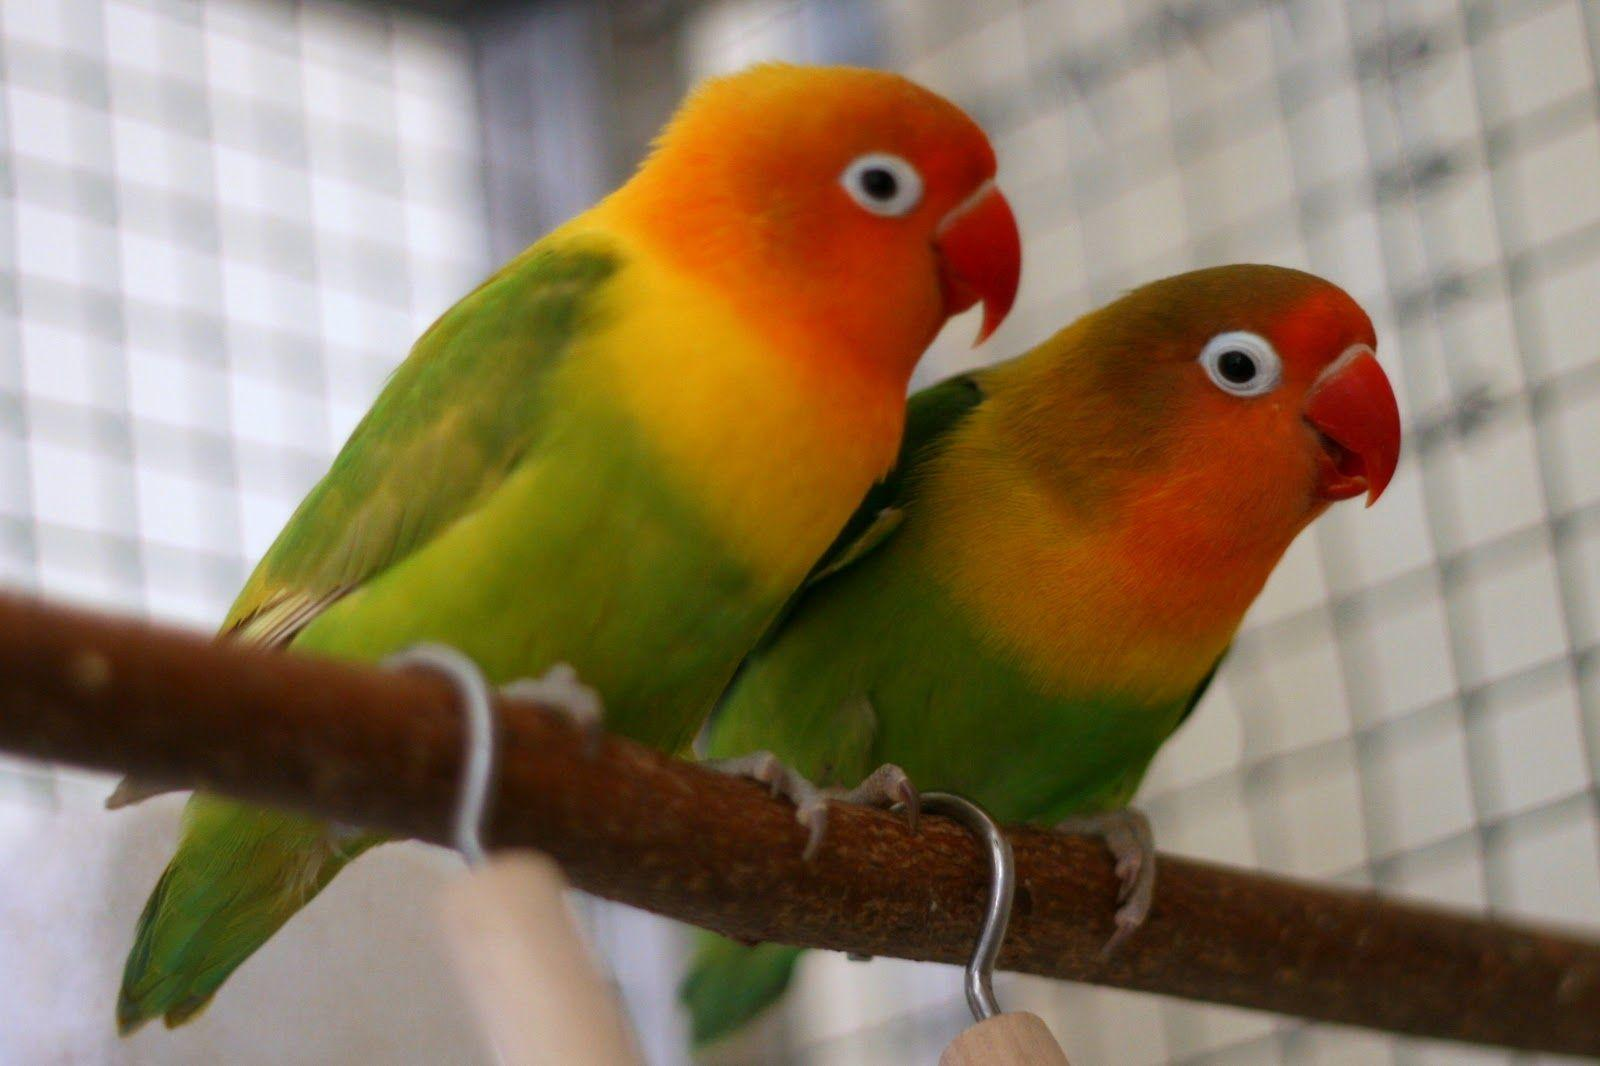 Image For > Love Birds Image Hd